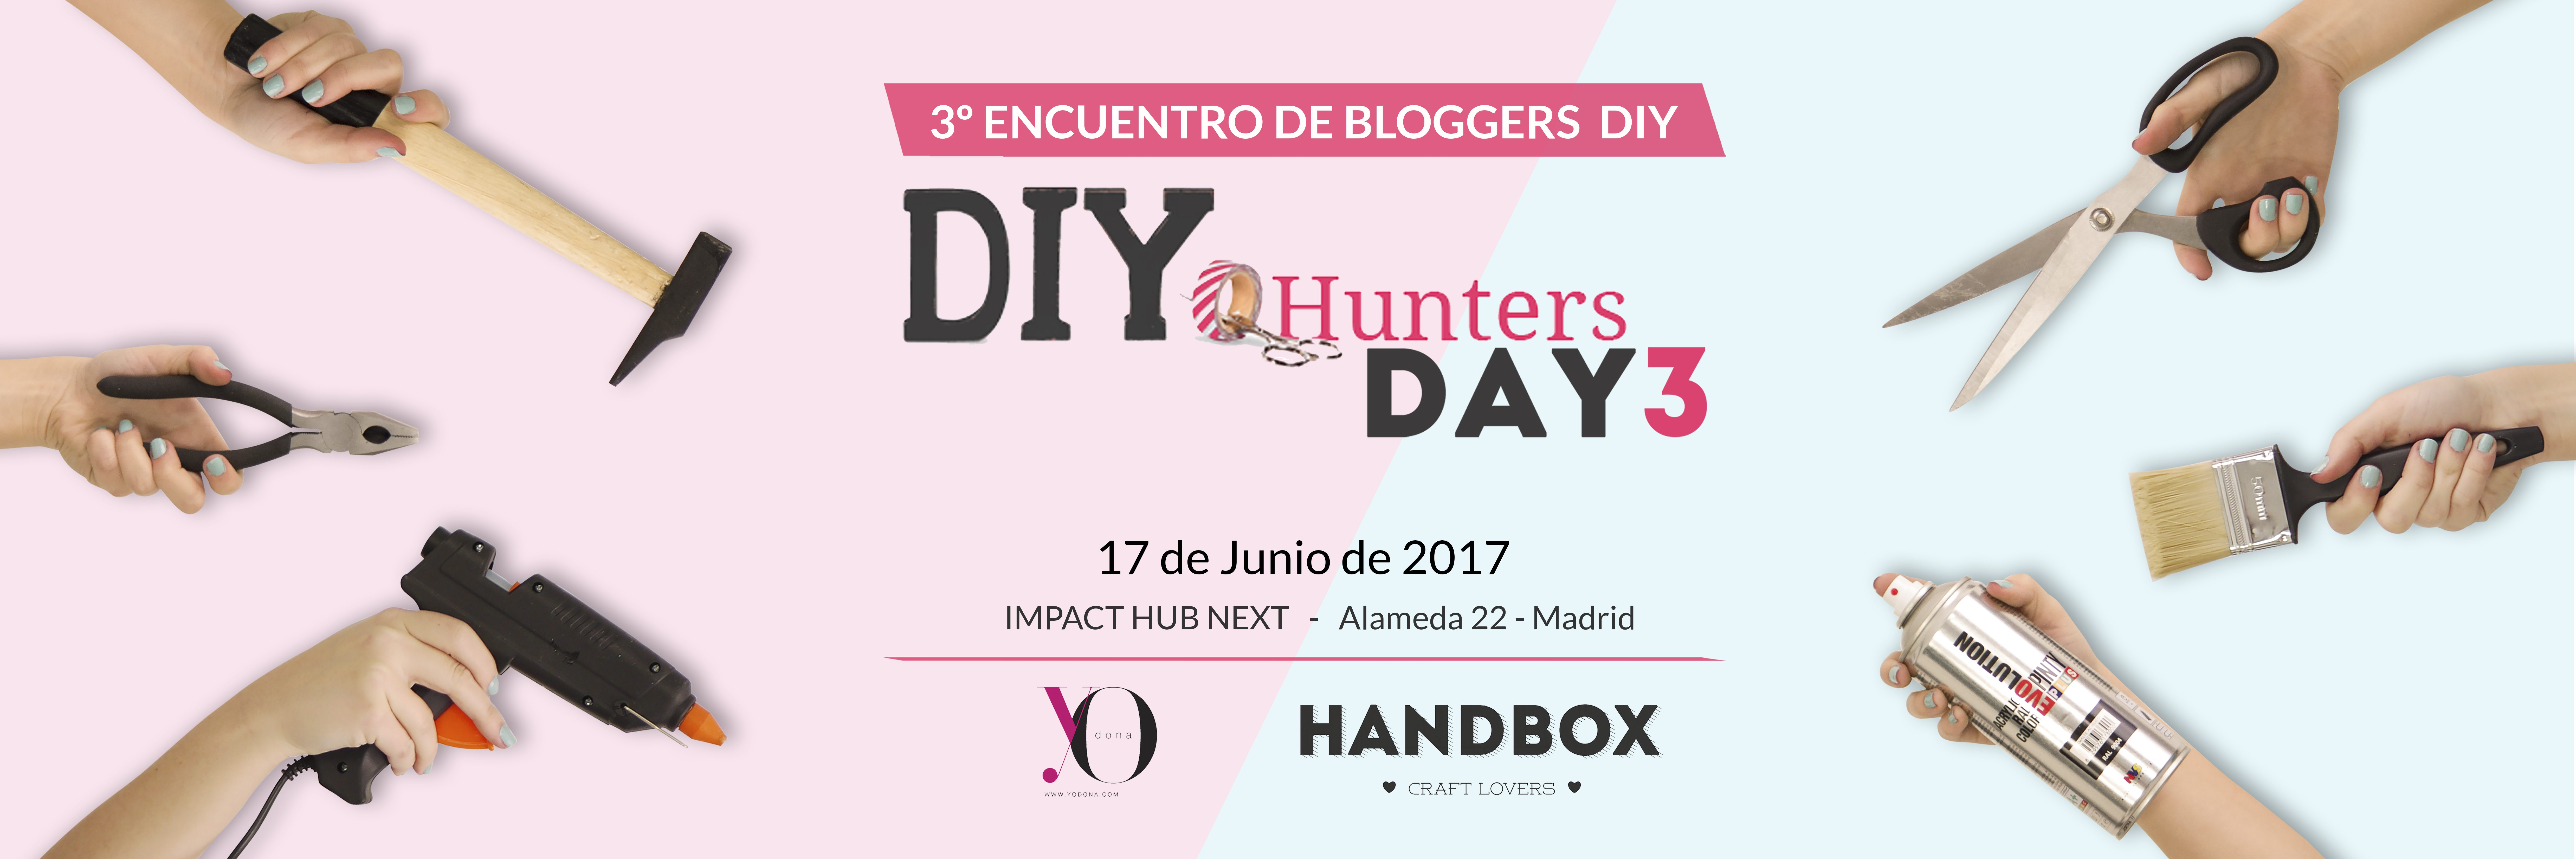 cartel diy hunters day 3 TW